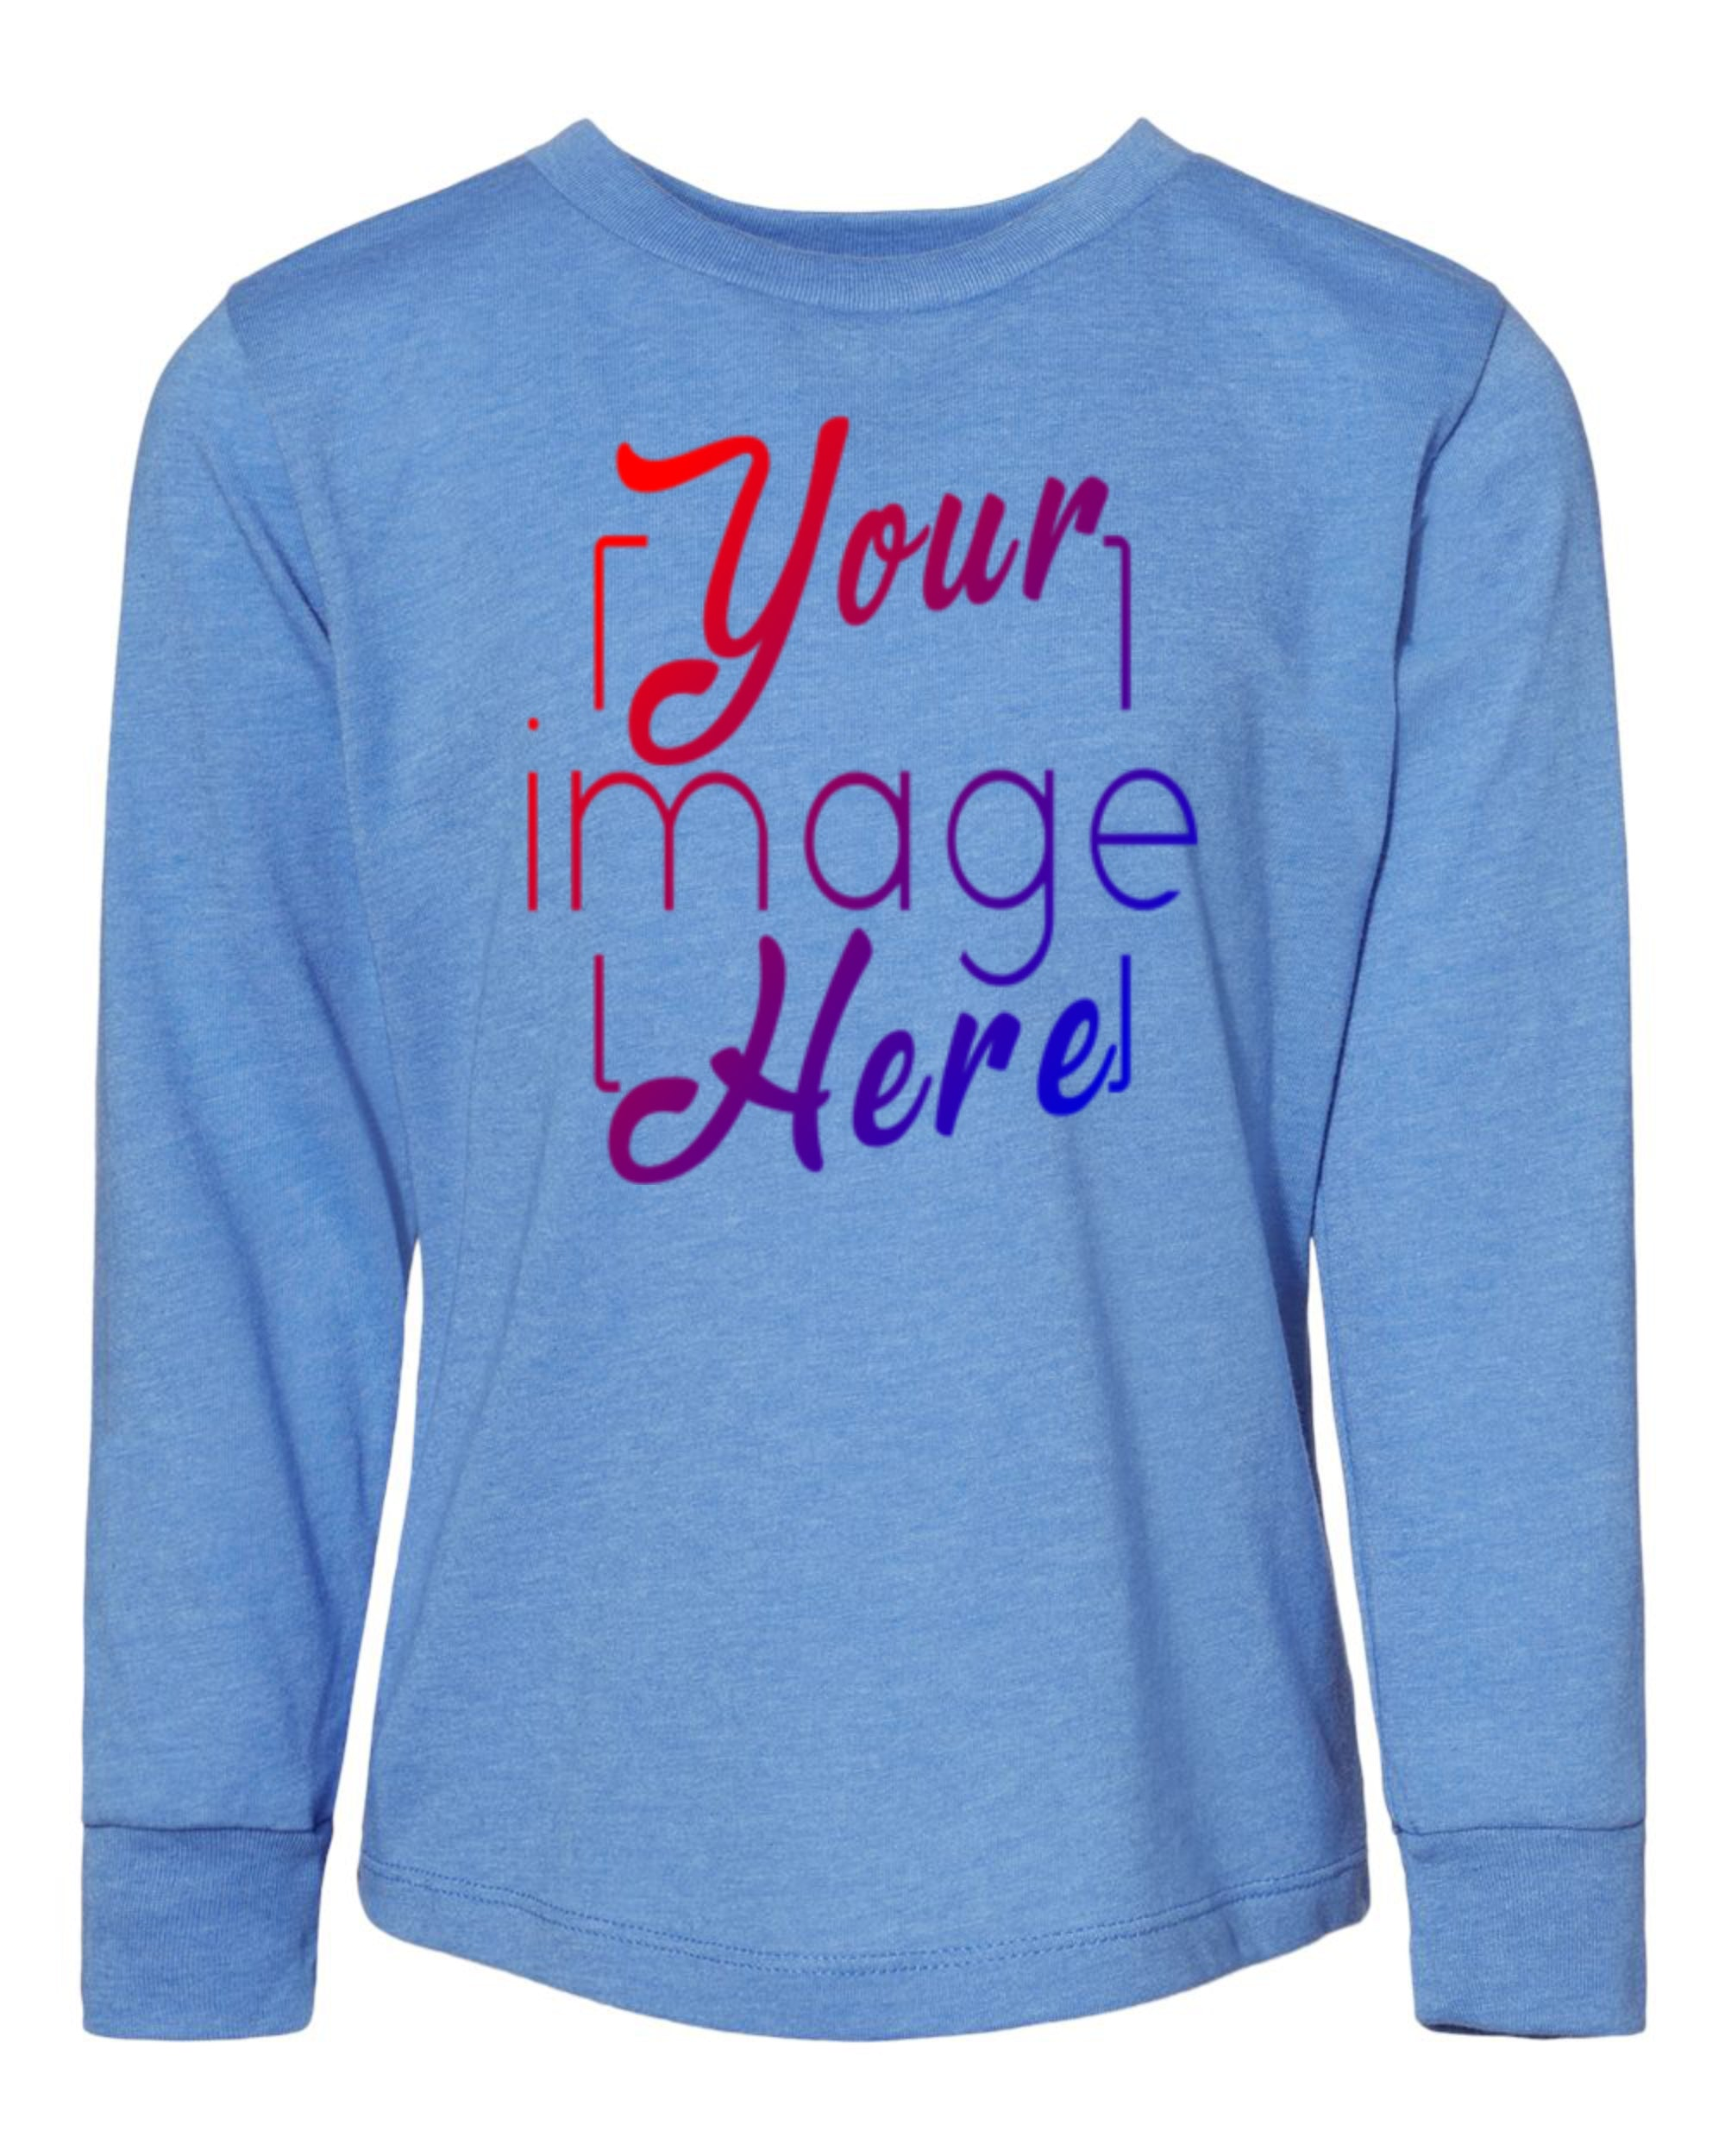 Front Image of Toddler Size Long Sleeve T-shirt for Custom Printing